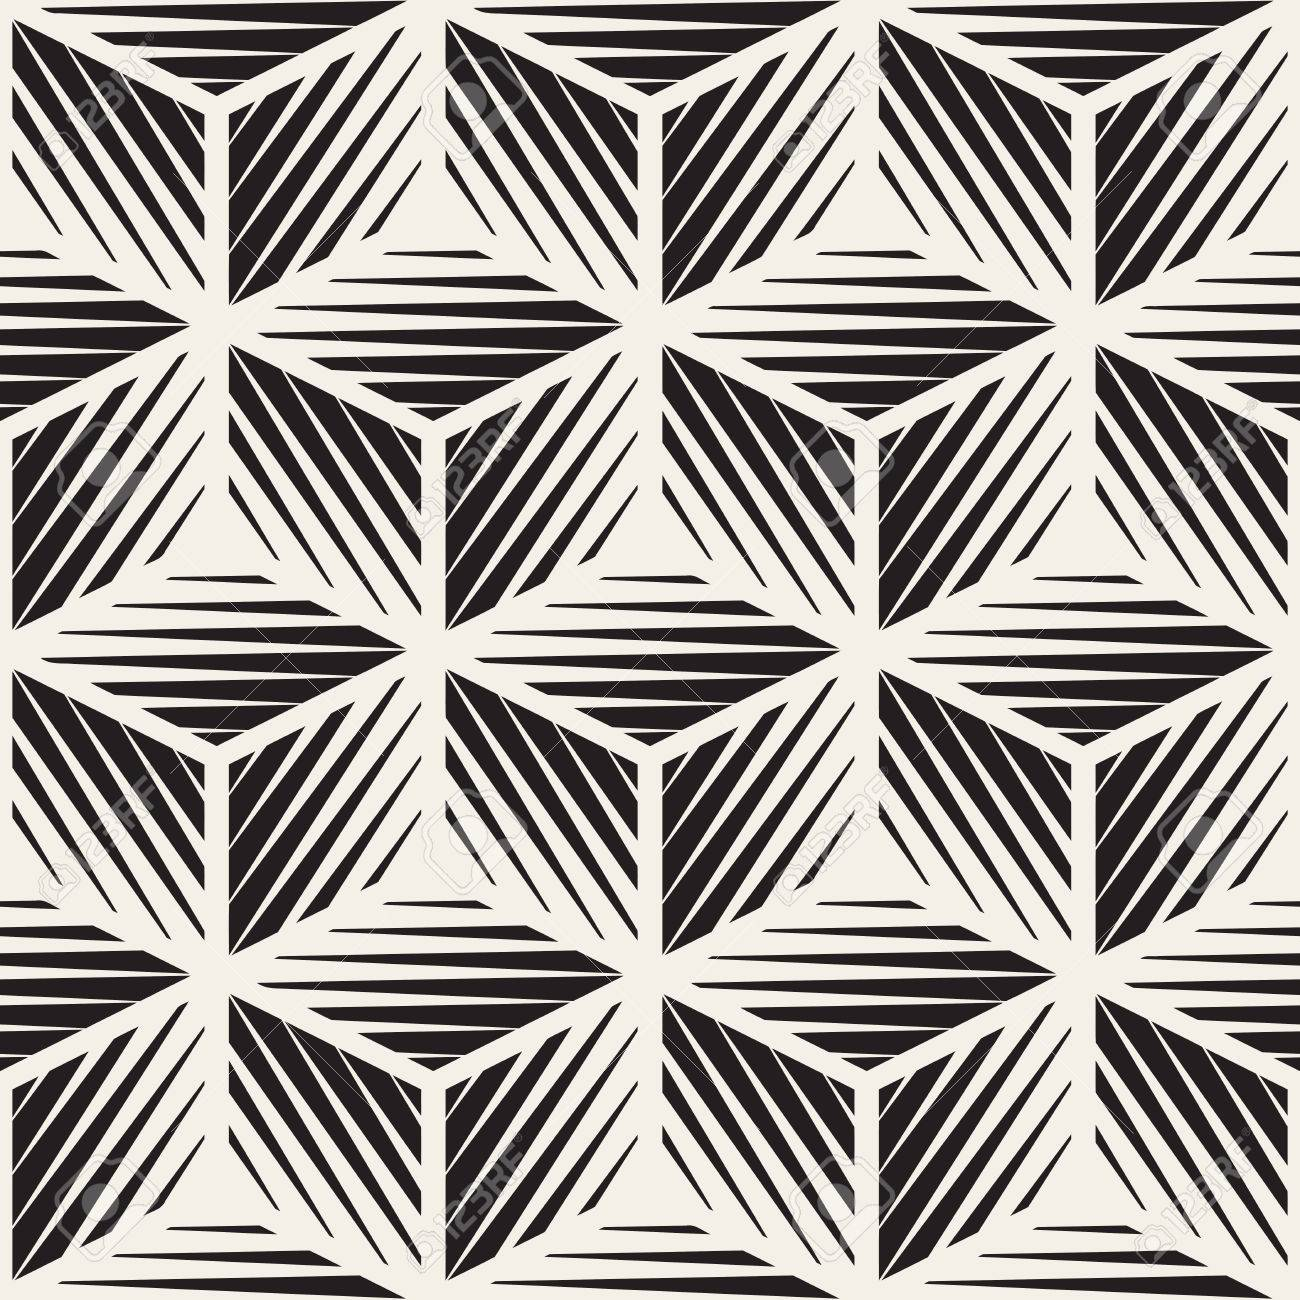 Seamless Black And White Cube Shape Lines Engravement Geometric Pattern . Abstract Background - 57884580